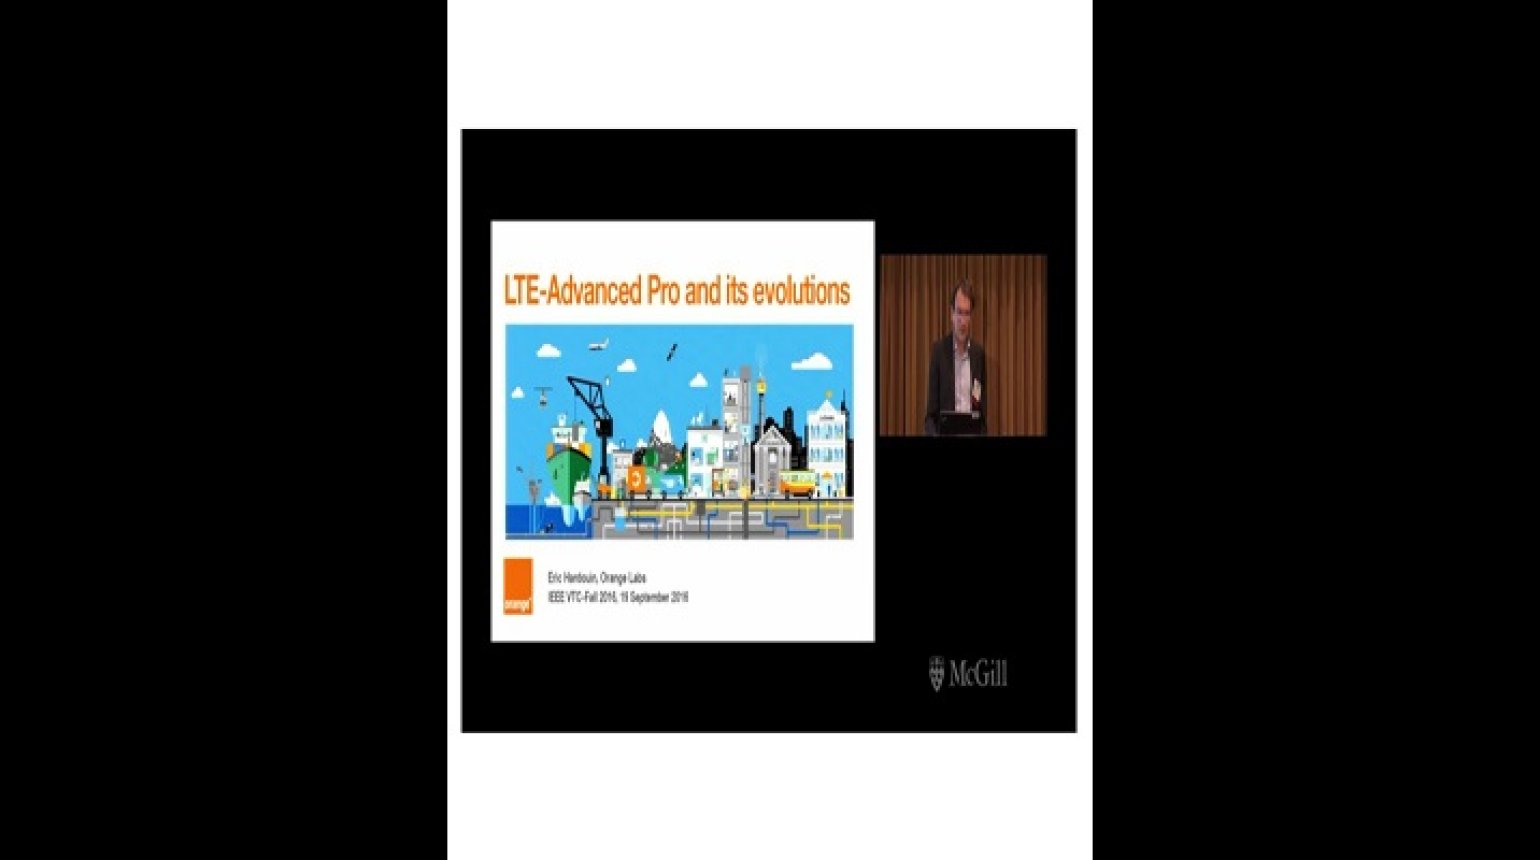 Video - LTE Advanced Pro : Hardouin